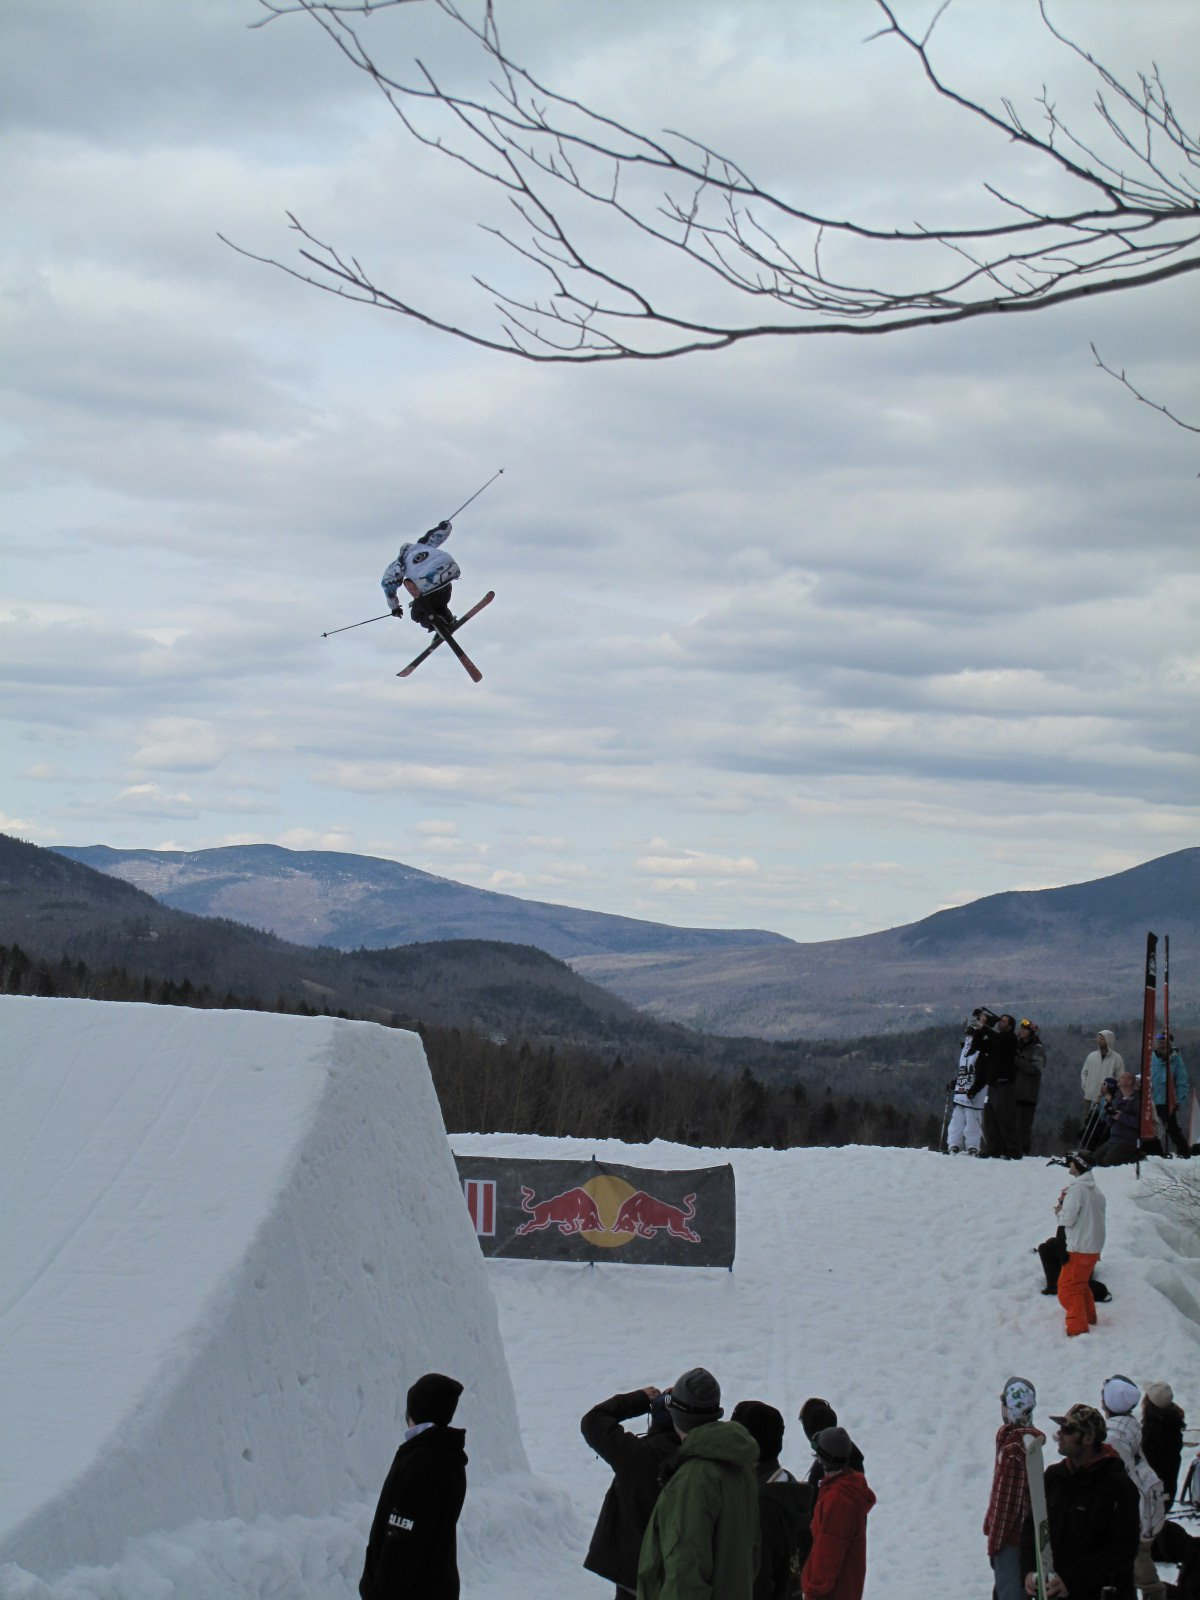 Vincent Gagnier sending it